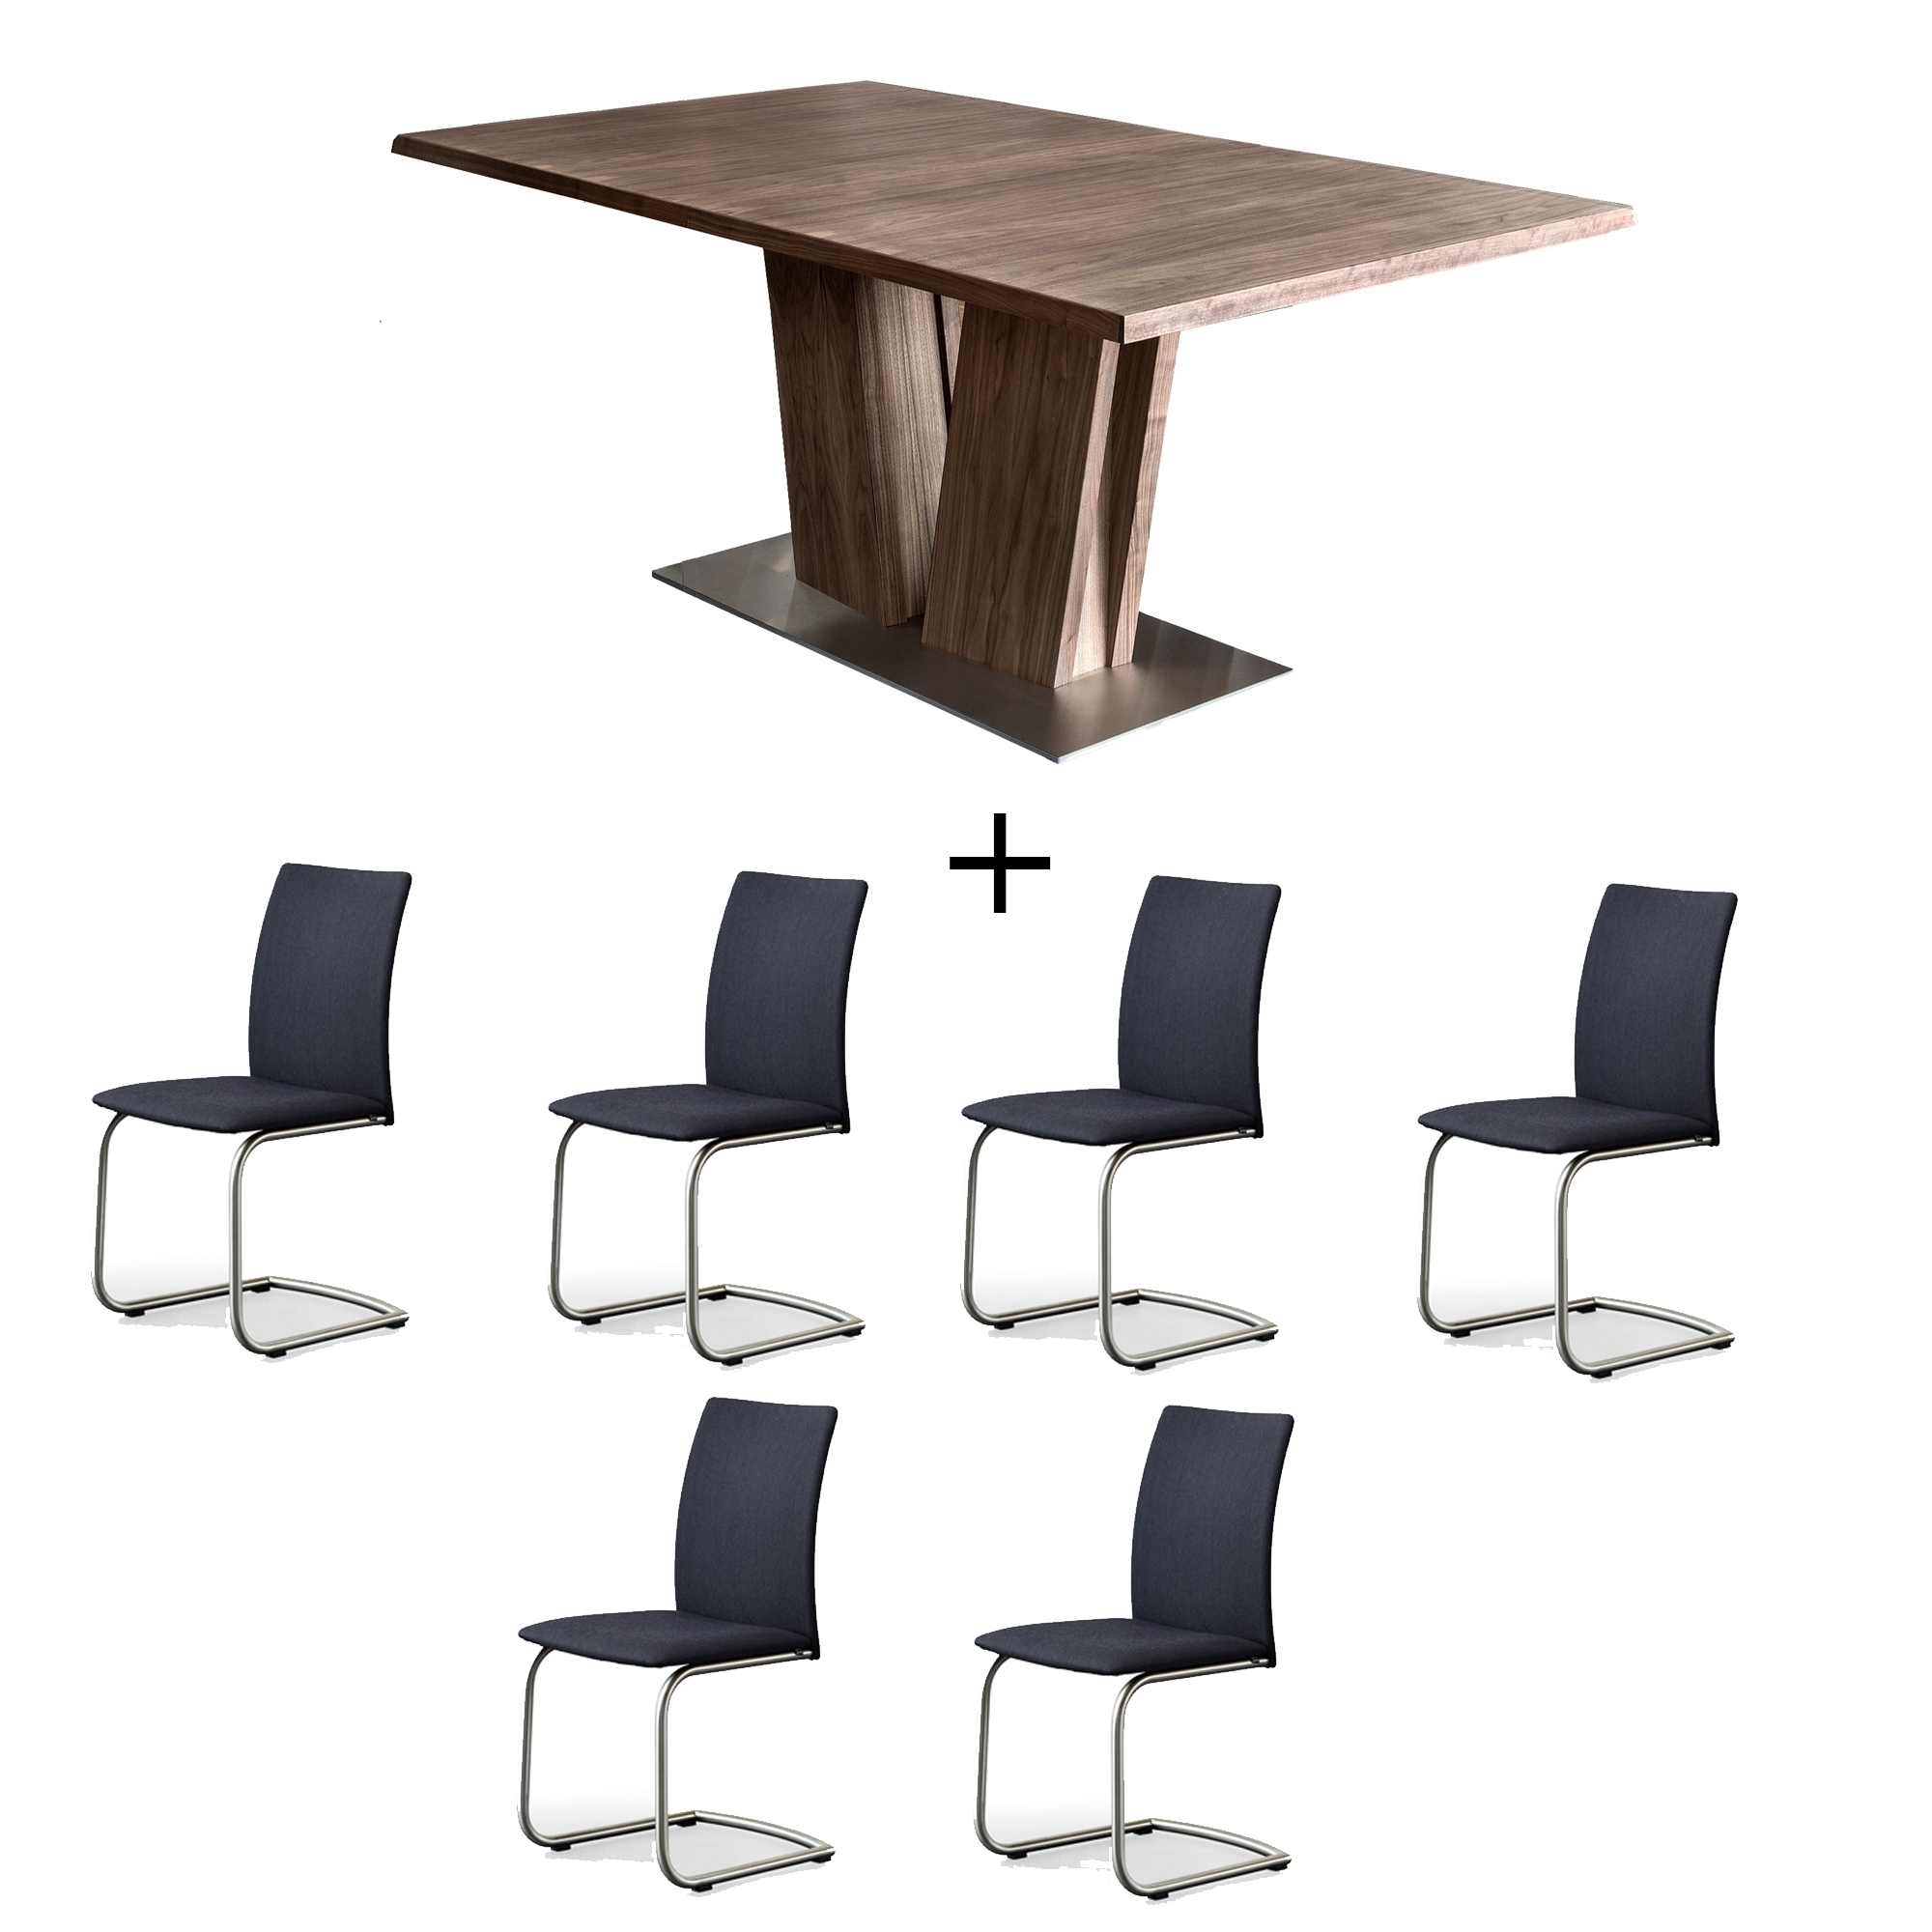 Walnut Dining Table And 6 Chairs For Famous Skovby Walnut Dining Table And 6 Chairs – Dining Sets – Cookes Furniture (View 25 of 25)